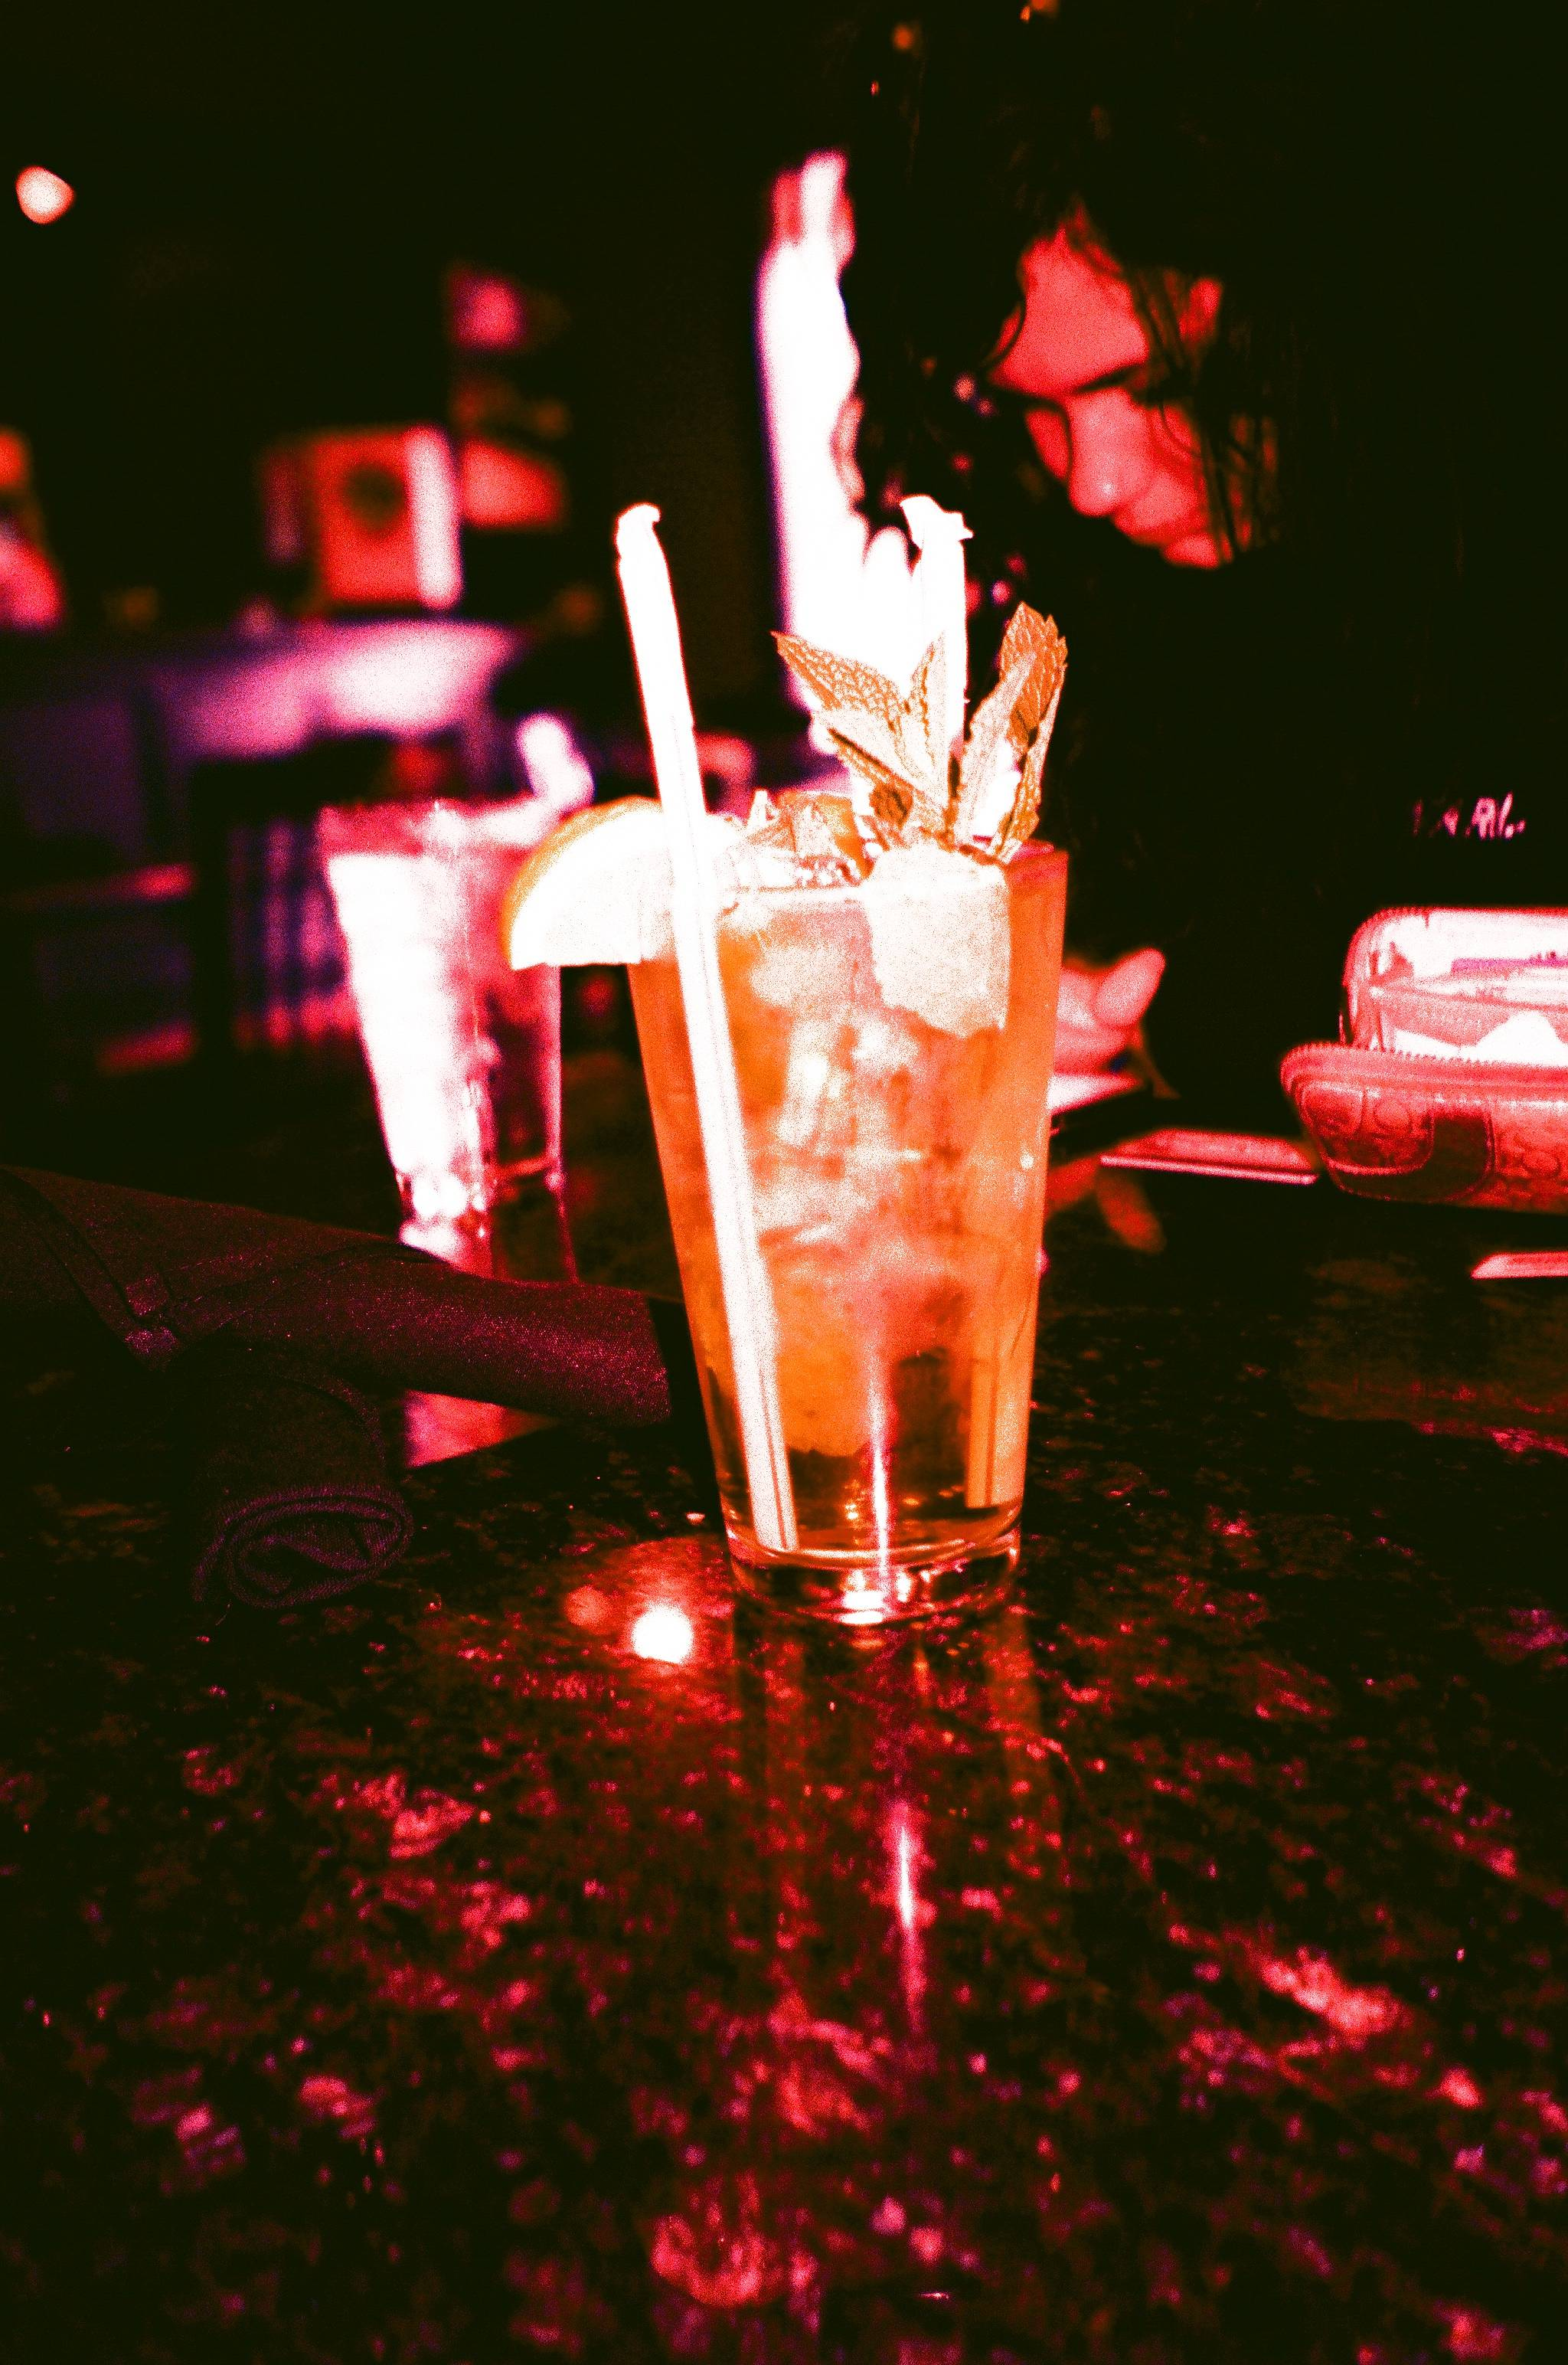 Fuji Natura Classica Low Light Perfection with Ease · Lomography